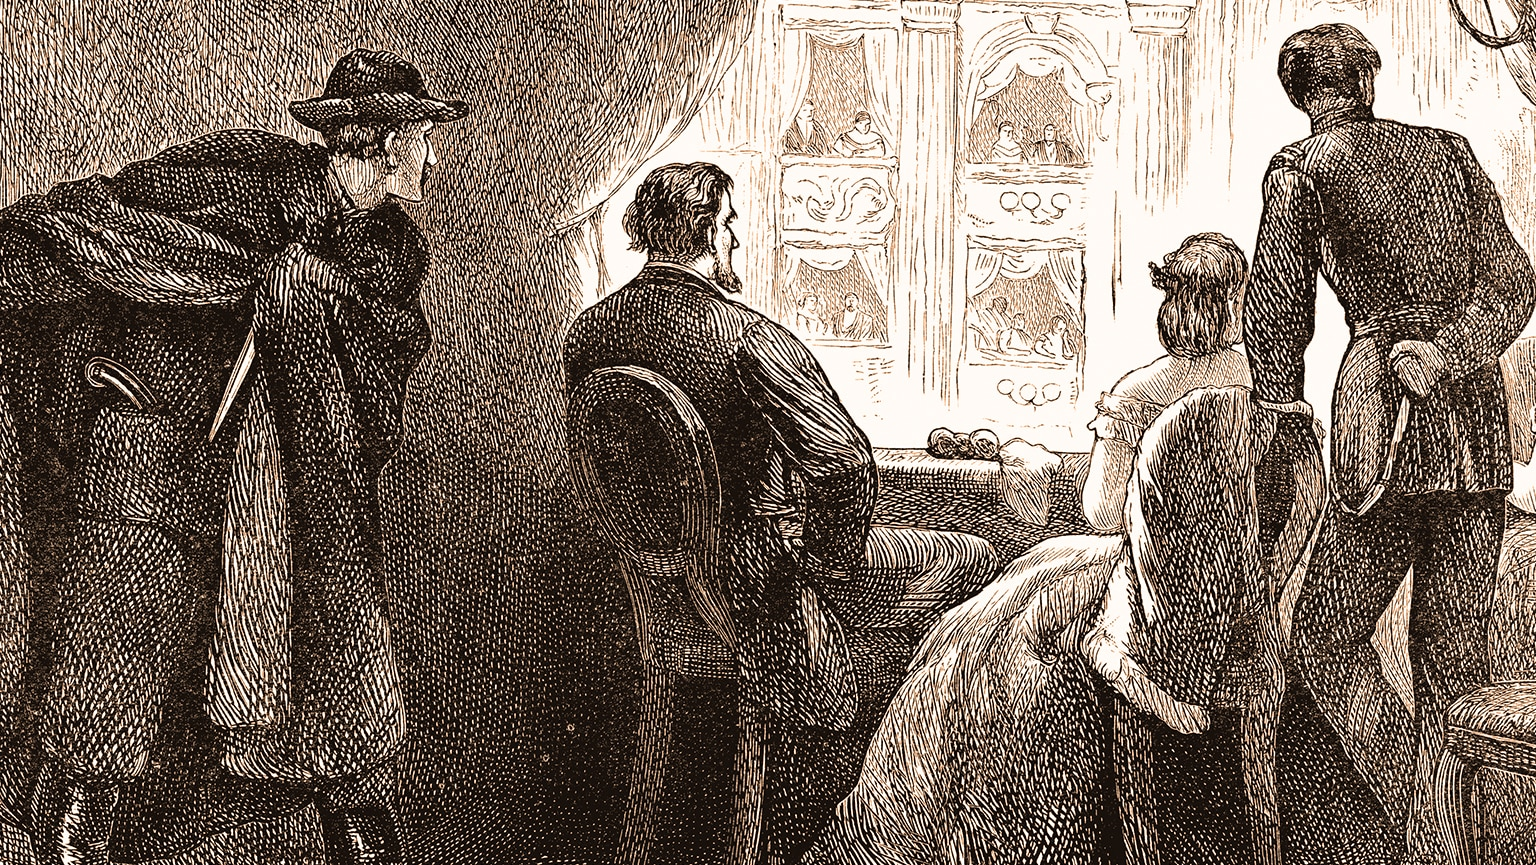 lincoln assassination Every american schoolchild learns the tragic story of the assassination, just as the long nightmare of the civil war drew to a close, of president abraham lincoln.